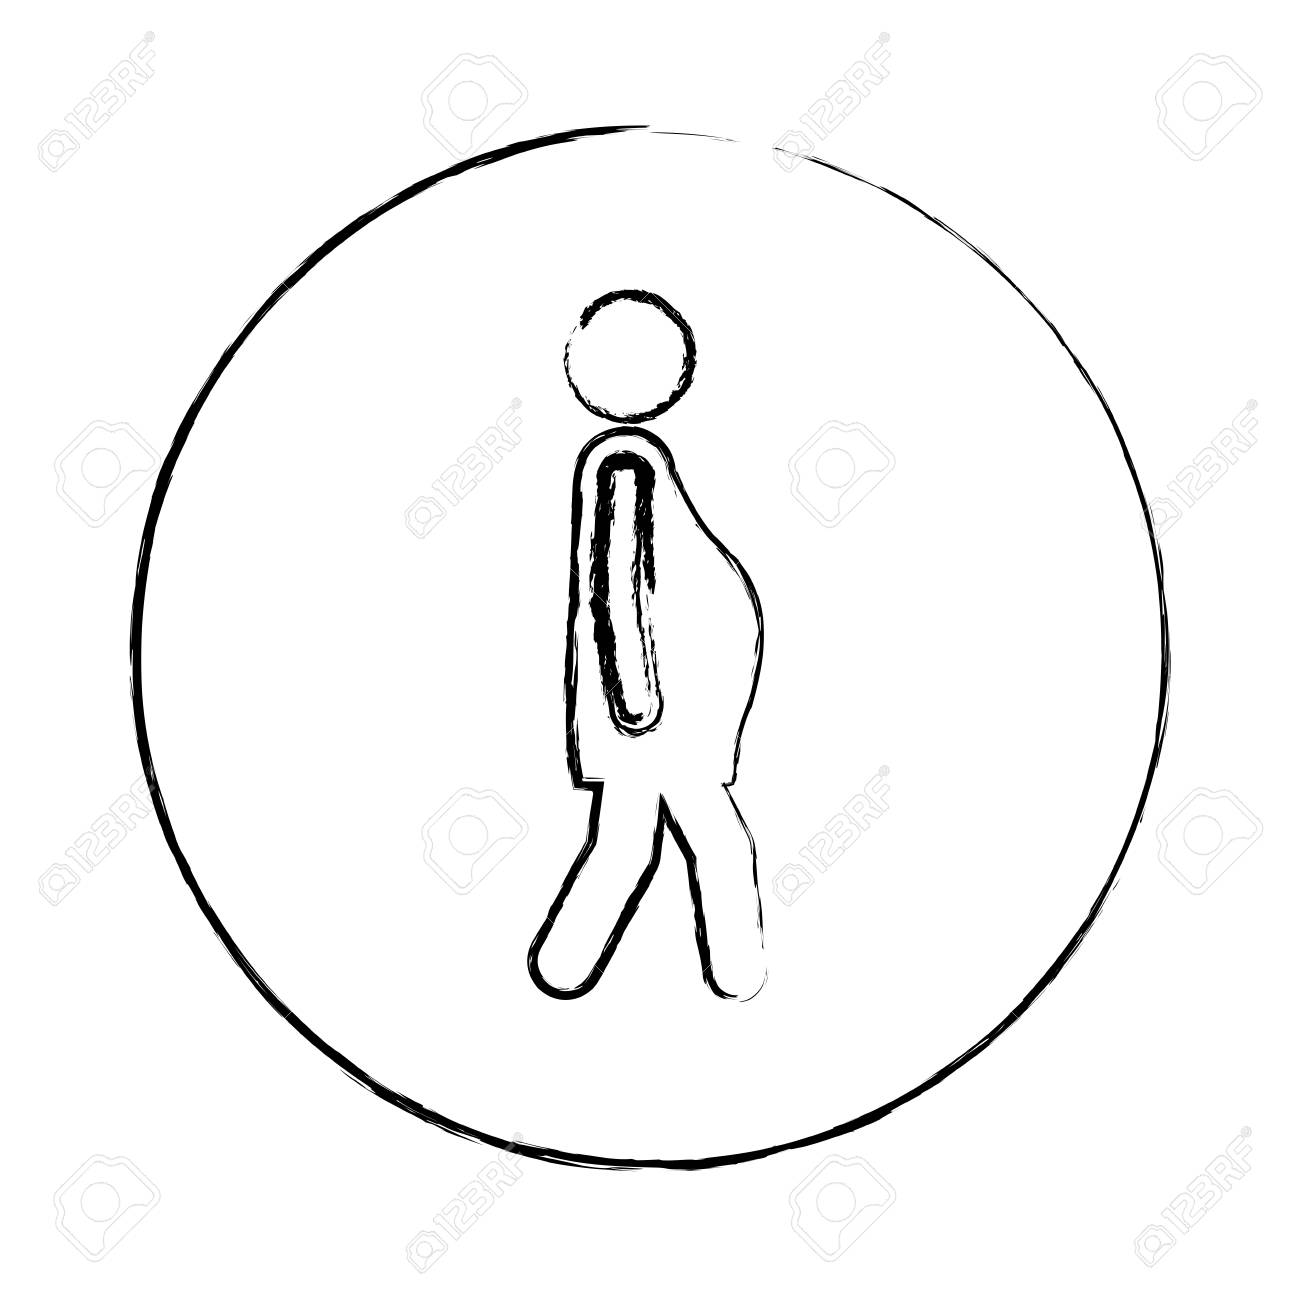 1300x1300 Blurred Circular Frame Silhouette Pictogram Woman Pregnant Walking